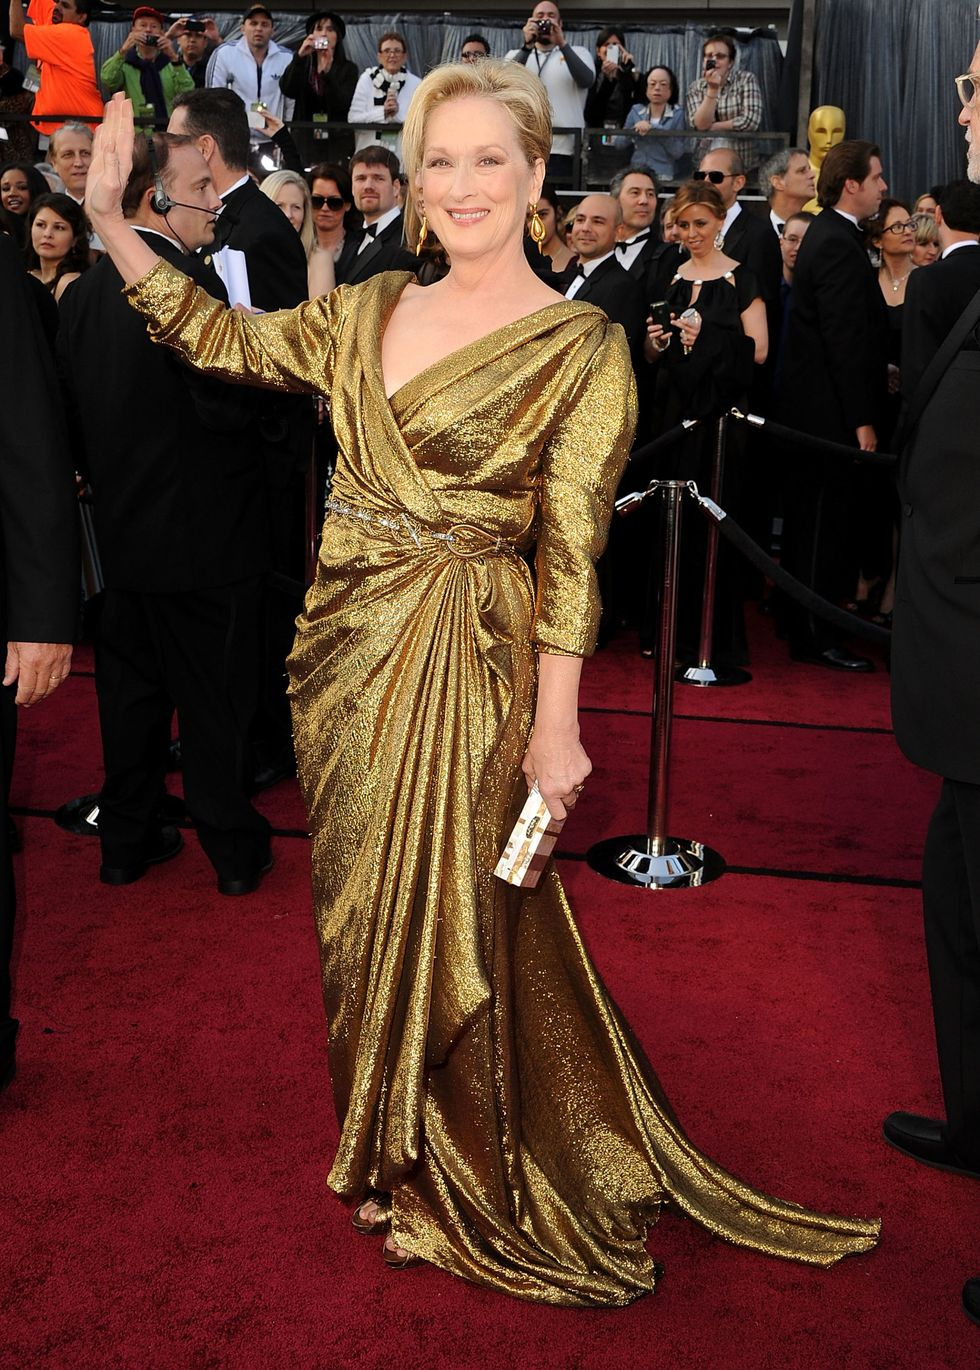 Meryl Streep, 2012 Acting icon and epic speech-giver , Meryl mimicked an Oscar statuette (in her signature red carpet style: floor-length dress and plunging neckline) with this gold lamé Lanvin gown.